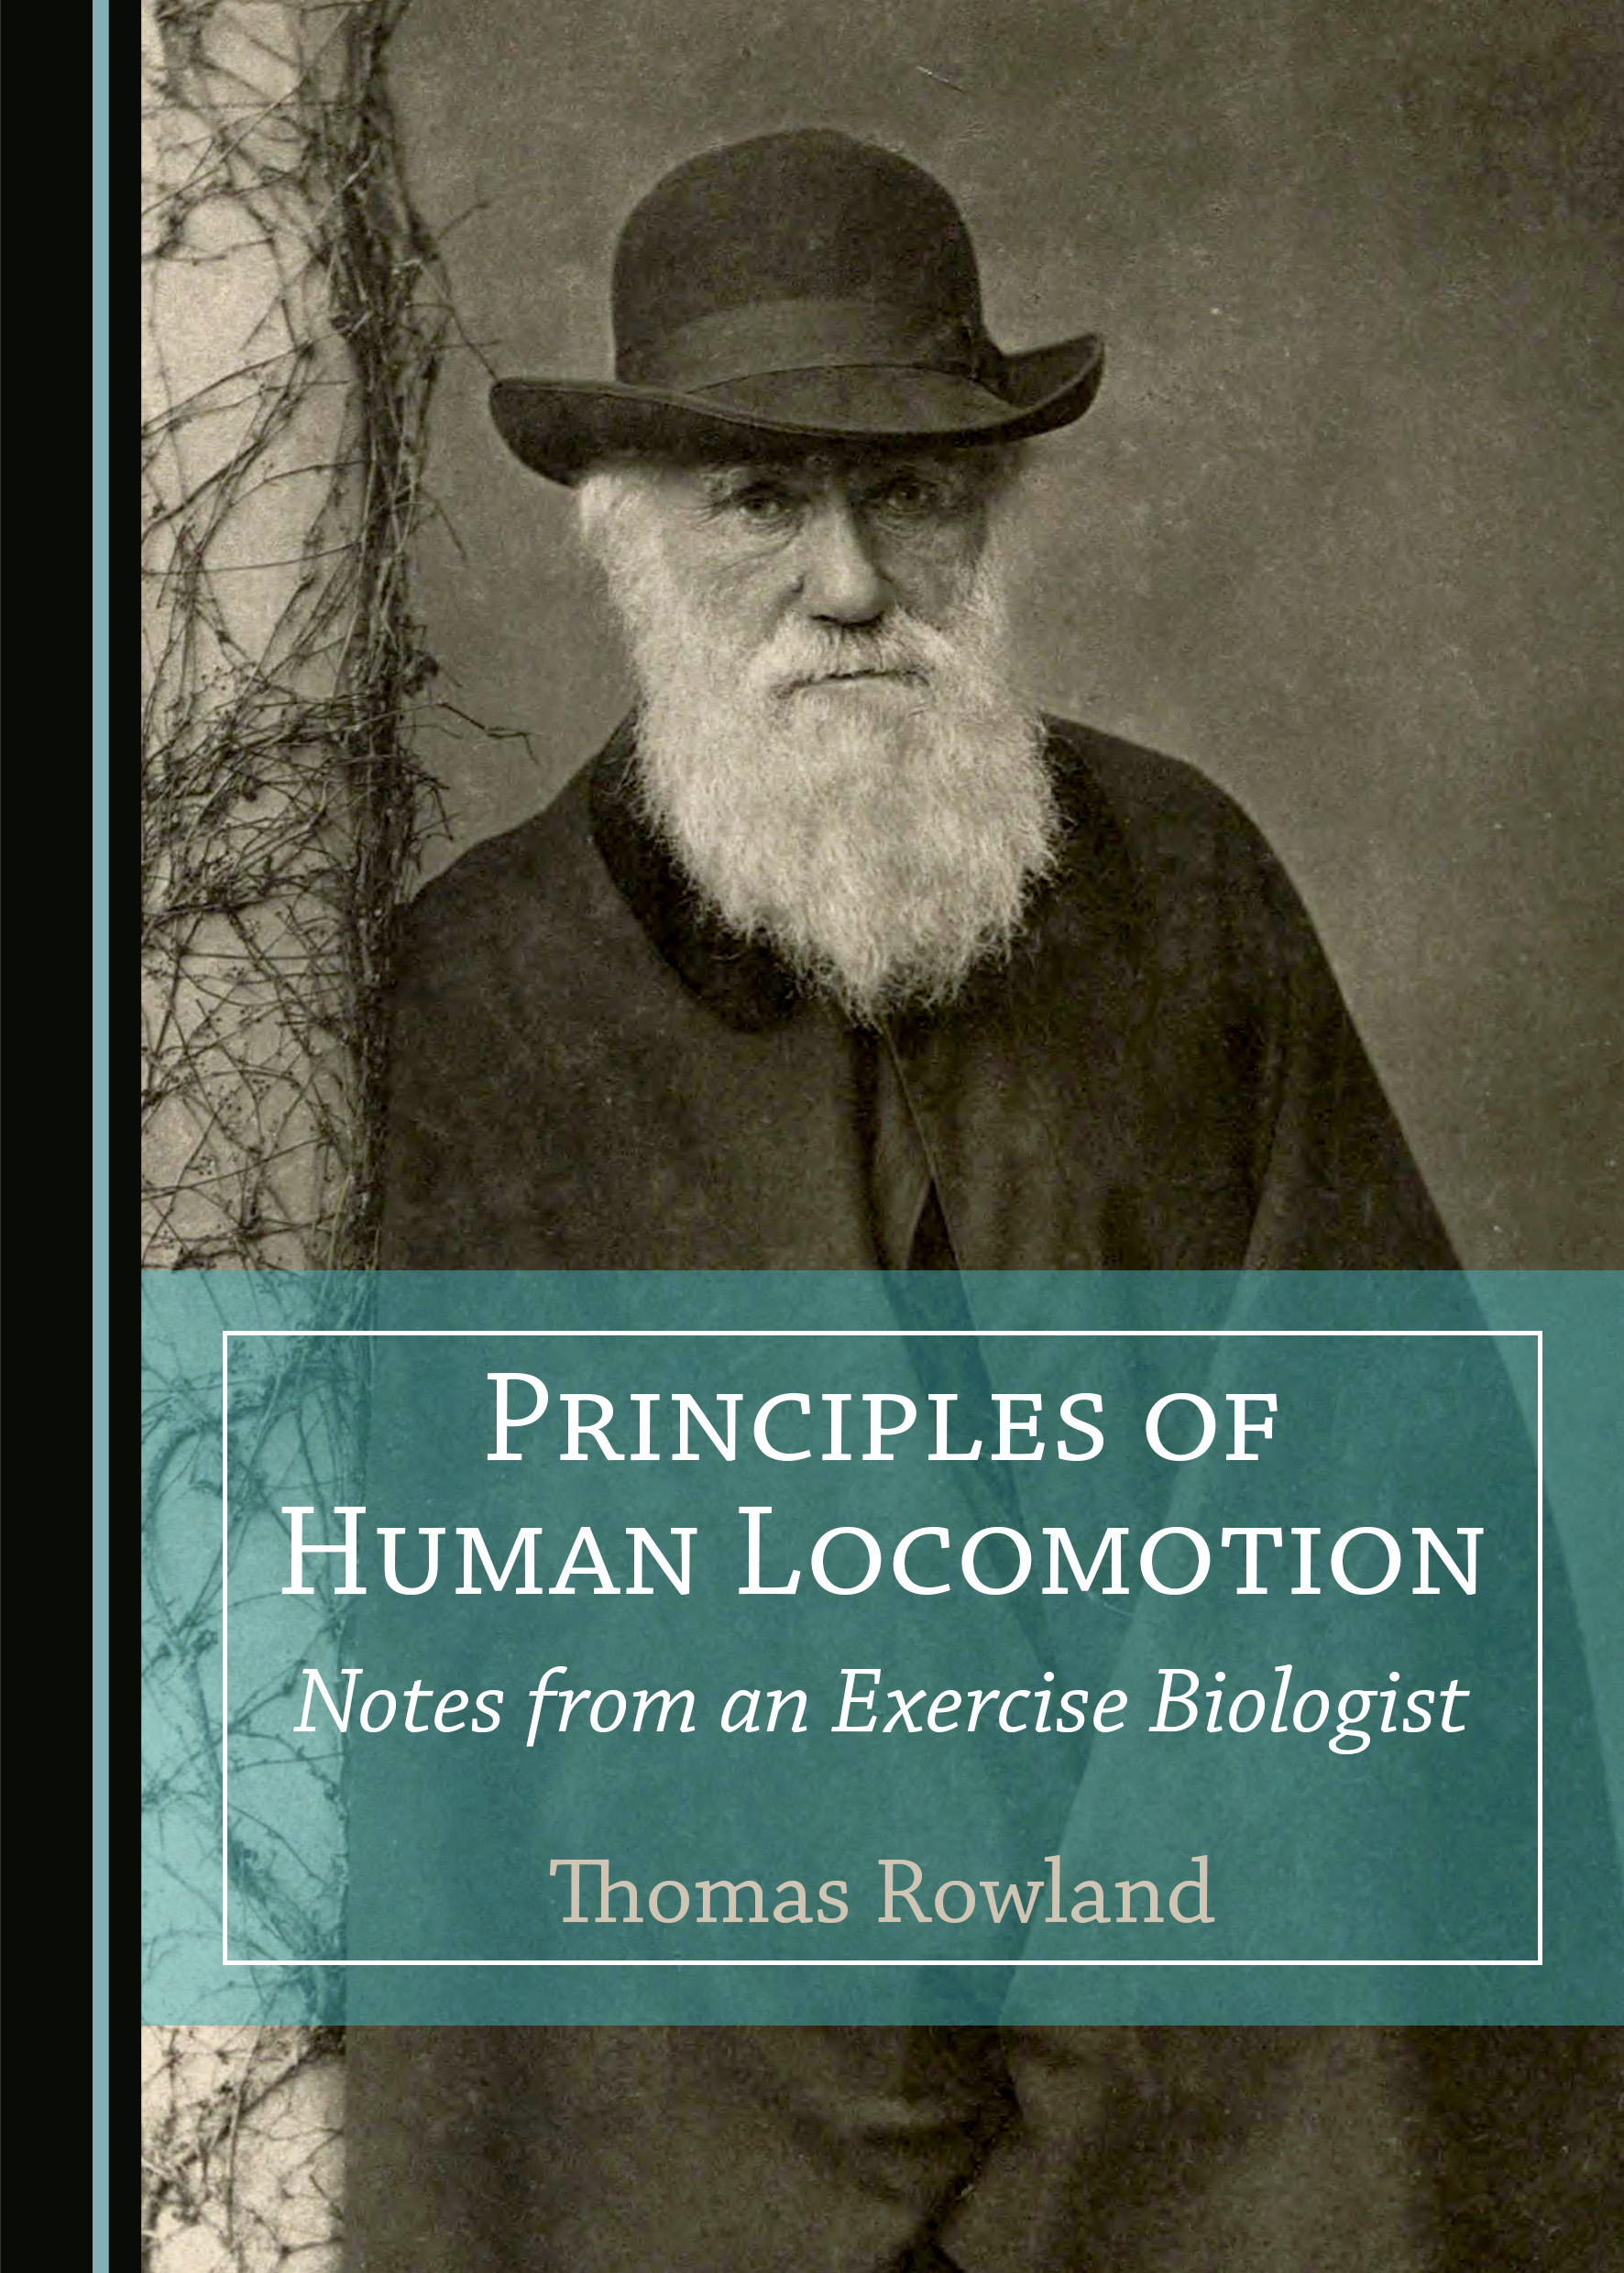 Principles of Human Locomotion: Notes from an Exercise Biologist